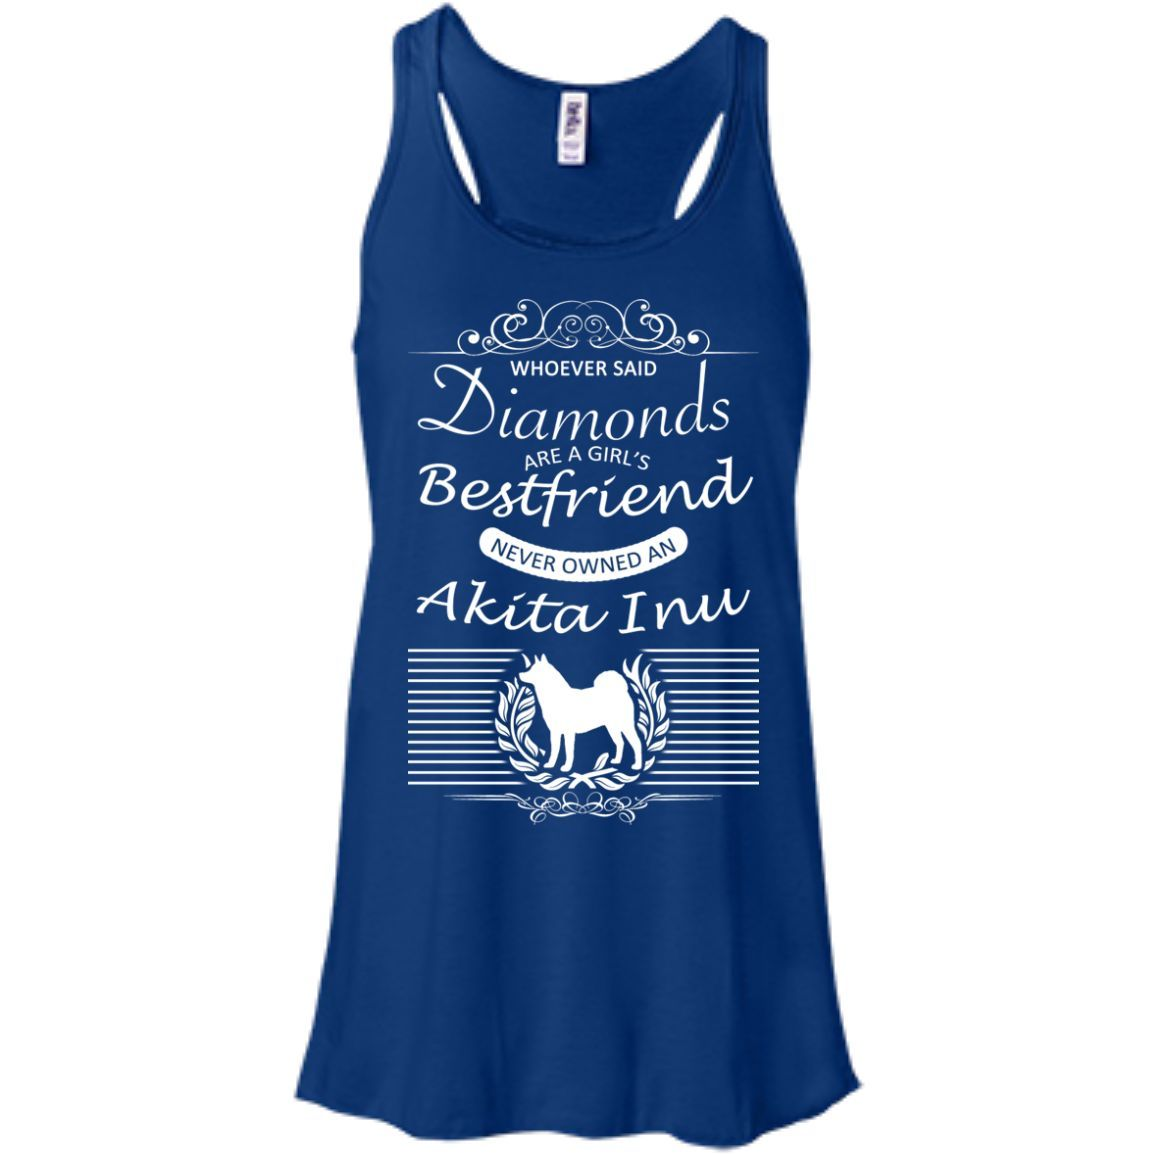 Whoever Said Diamonds Are A Girls Best Friend Never Owned An Akita Inu Flowy Racerback Tanks